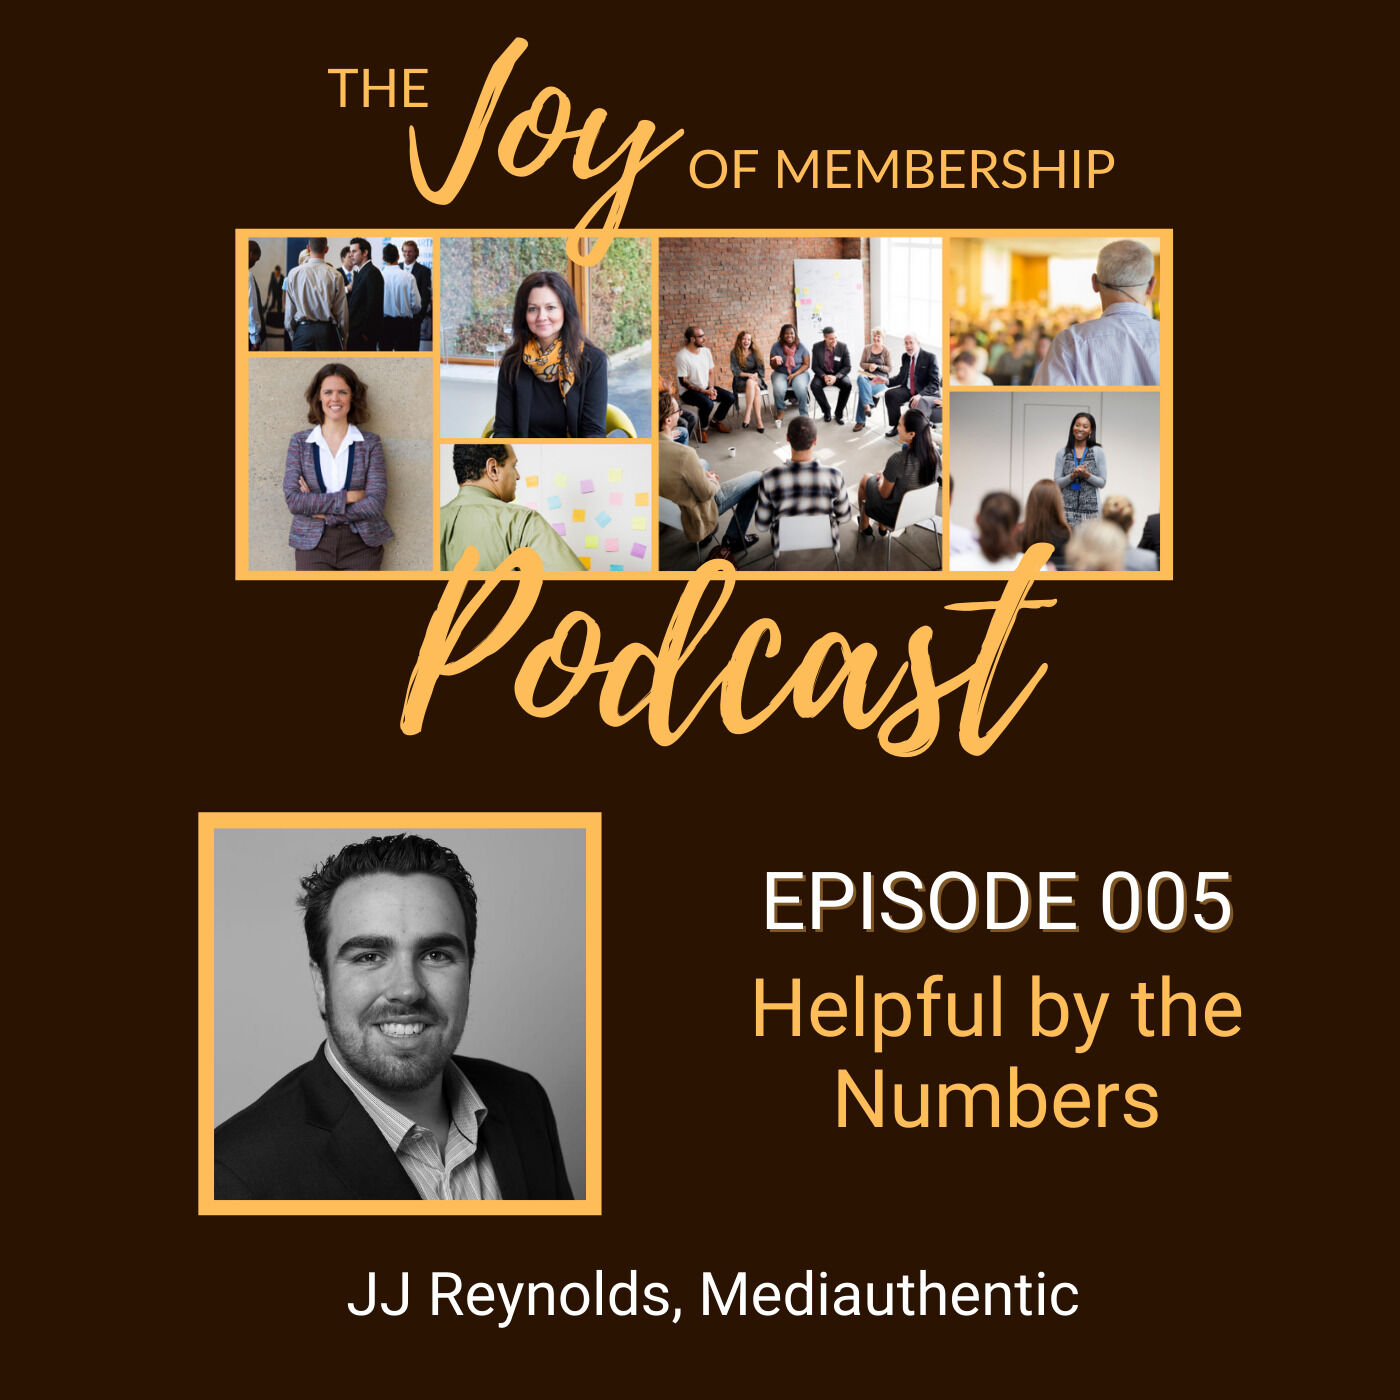 Helpful by the Numbers: JJ Reynolds, Mediauthentic